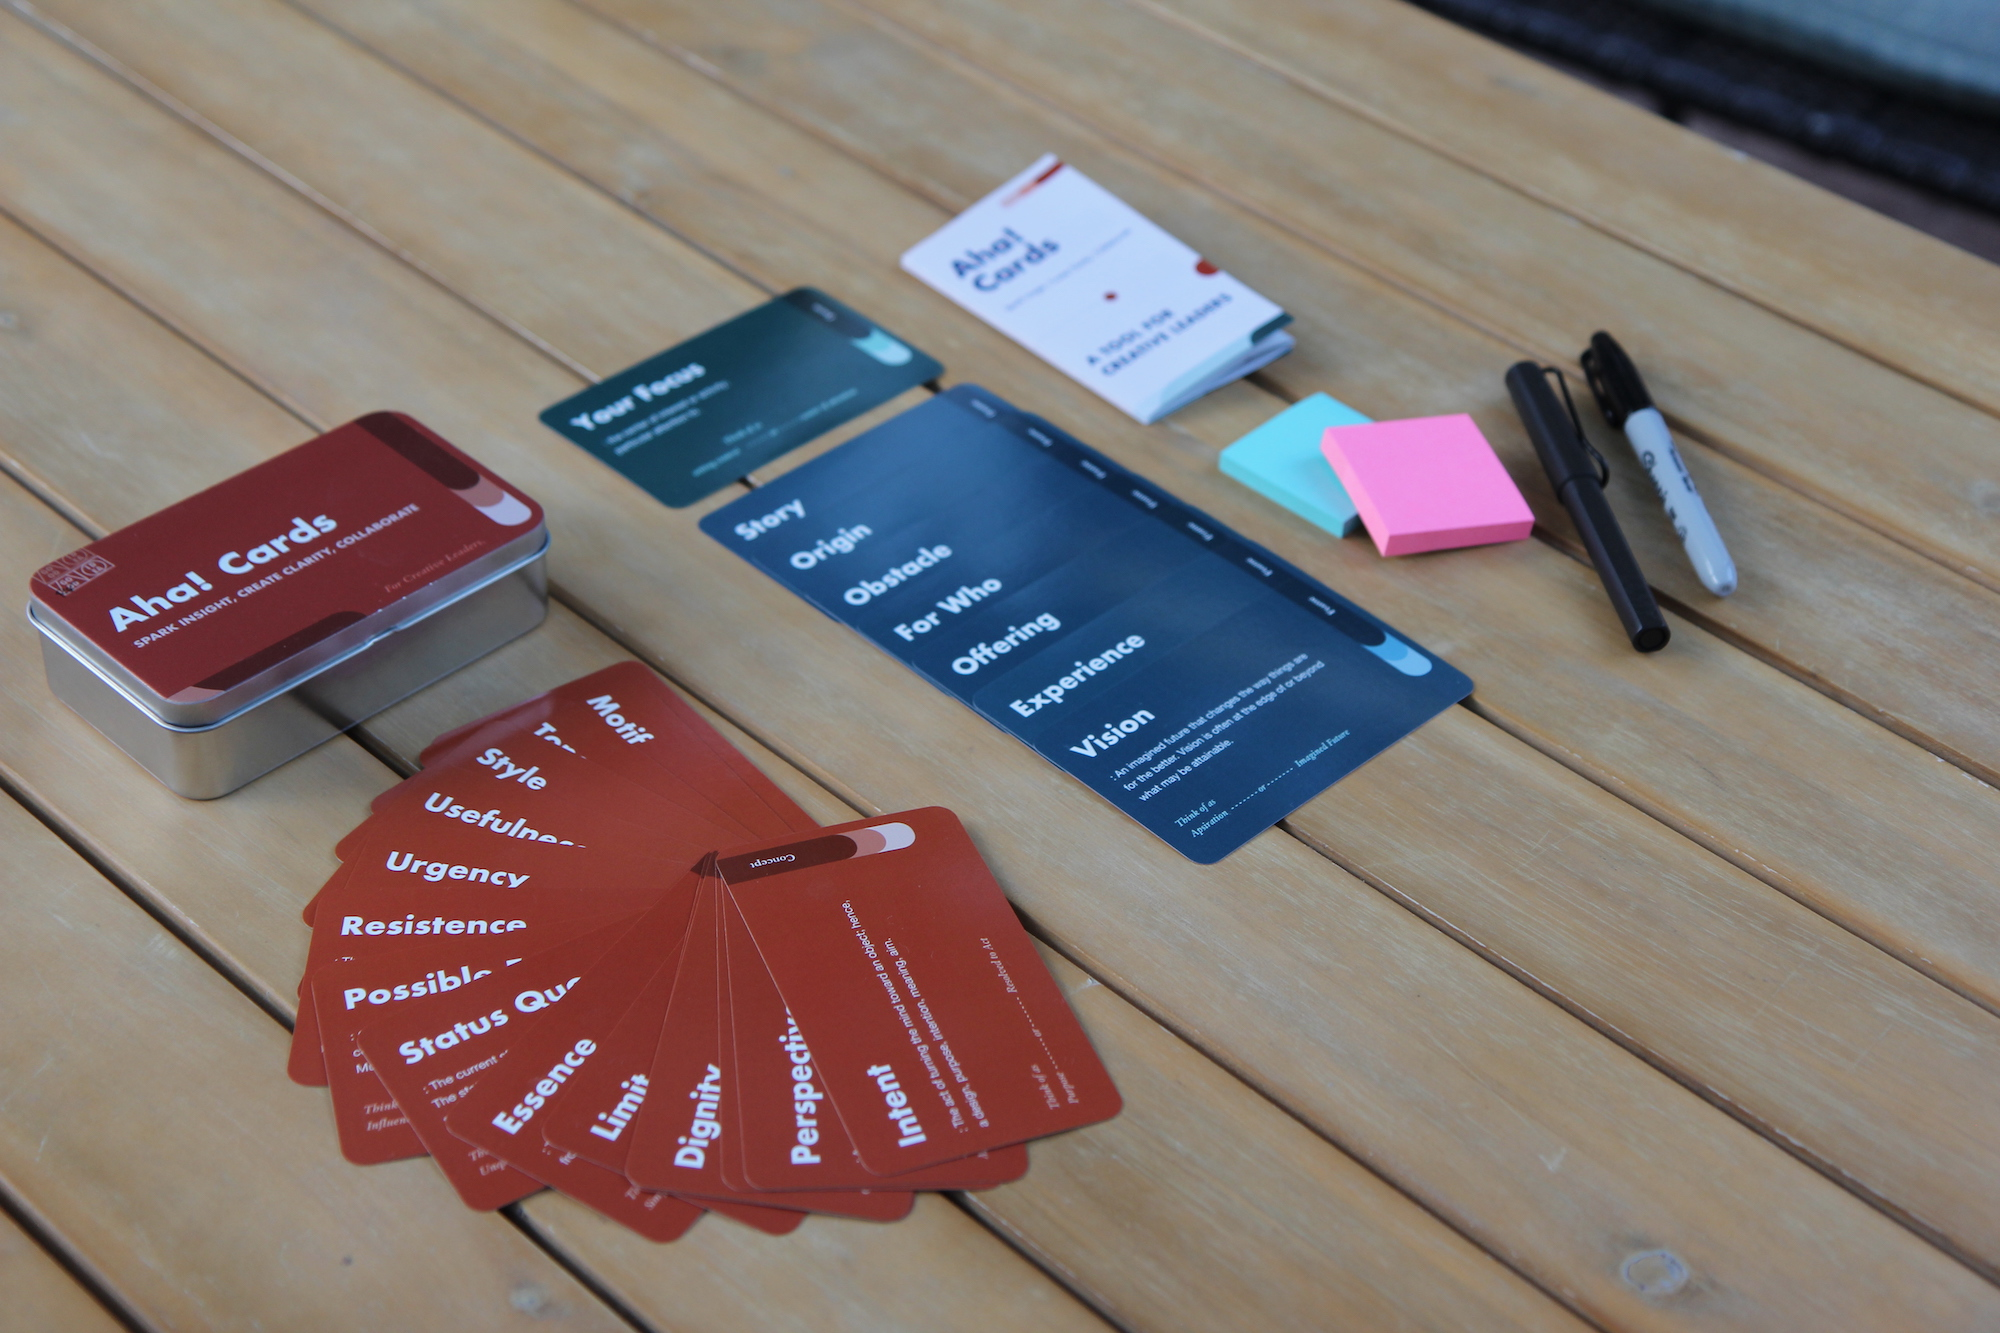 Creative Aha Cards are laid out on the table.  Creative workshop cards and sticky notes.